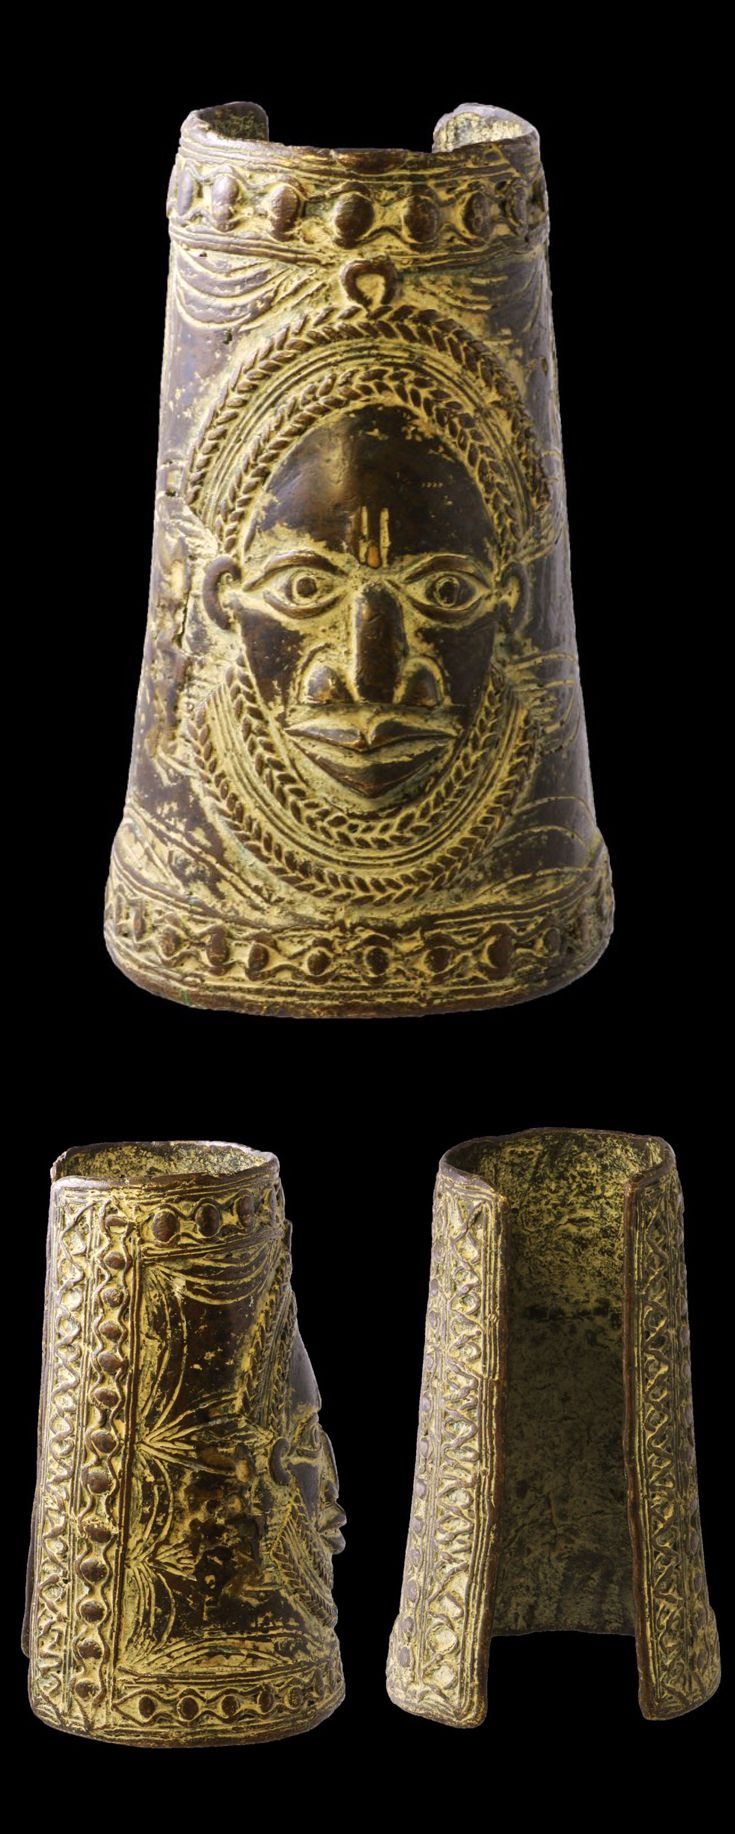 Nigeria Currency anklet from the Yoruba people Brass